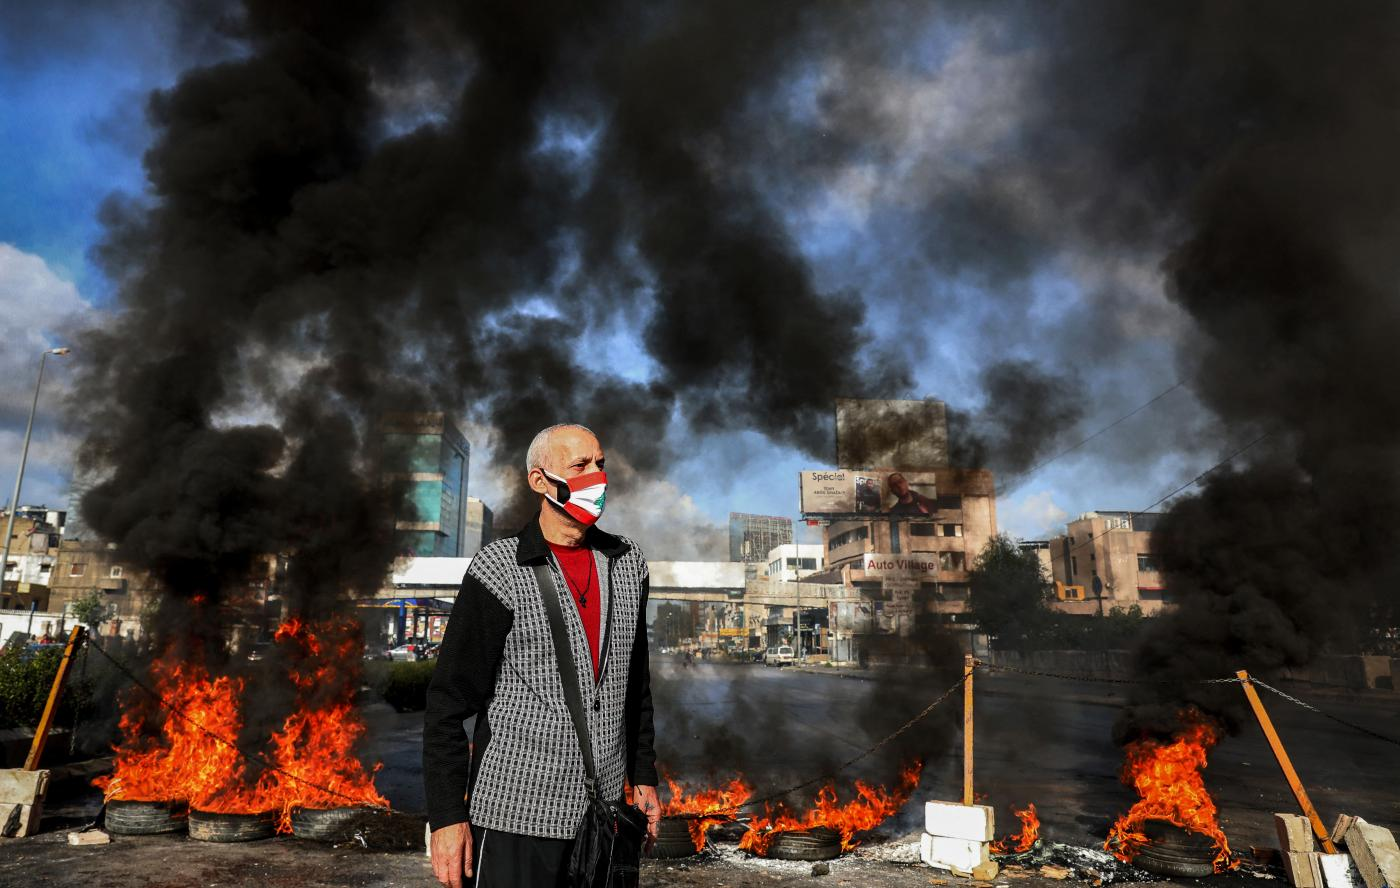 A man in mask a depicting the Lebanese flag stands next to flaming tires at a make-shift roadblock set-up by anti-government demonstrators in  Dora on the northern outskirts of Lebanon's capital Beirut on 8 March 8 2021 (Anwar Amro/AFP)